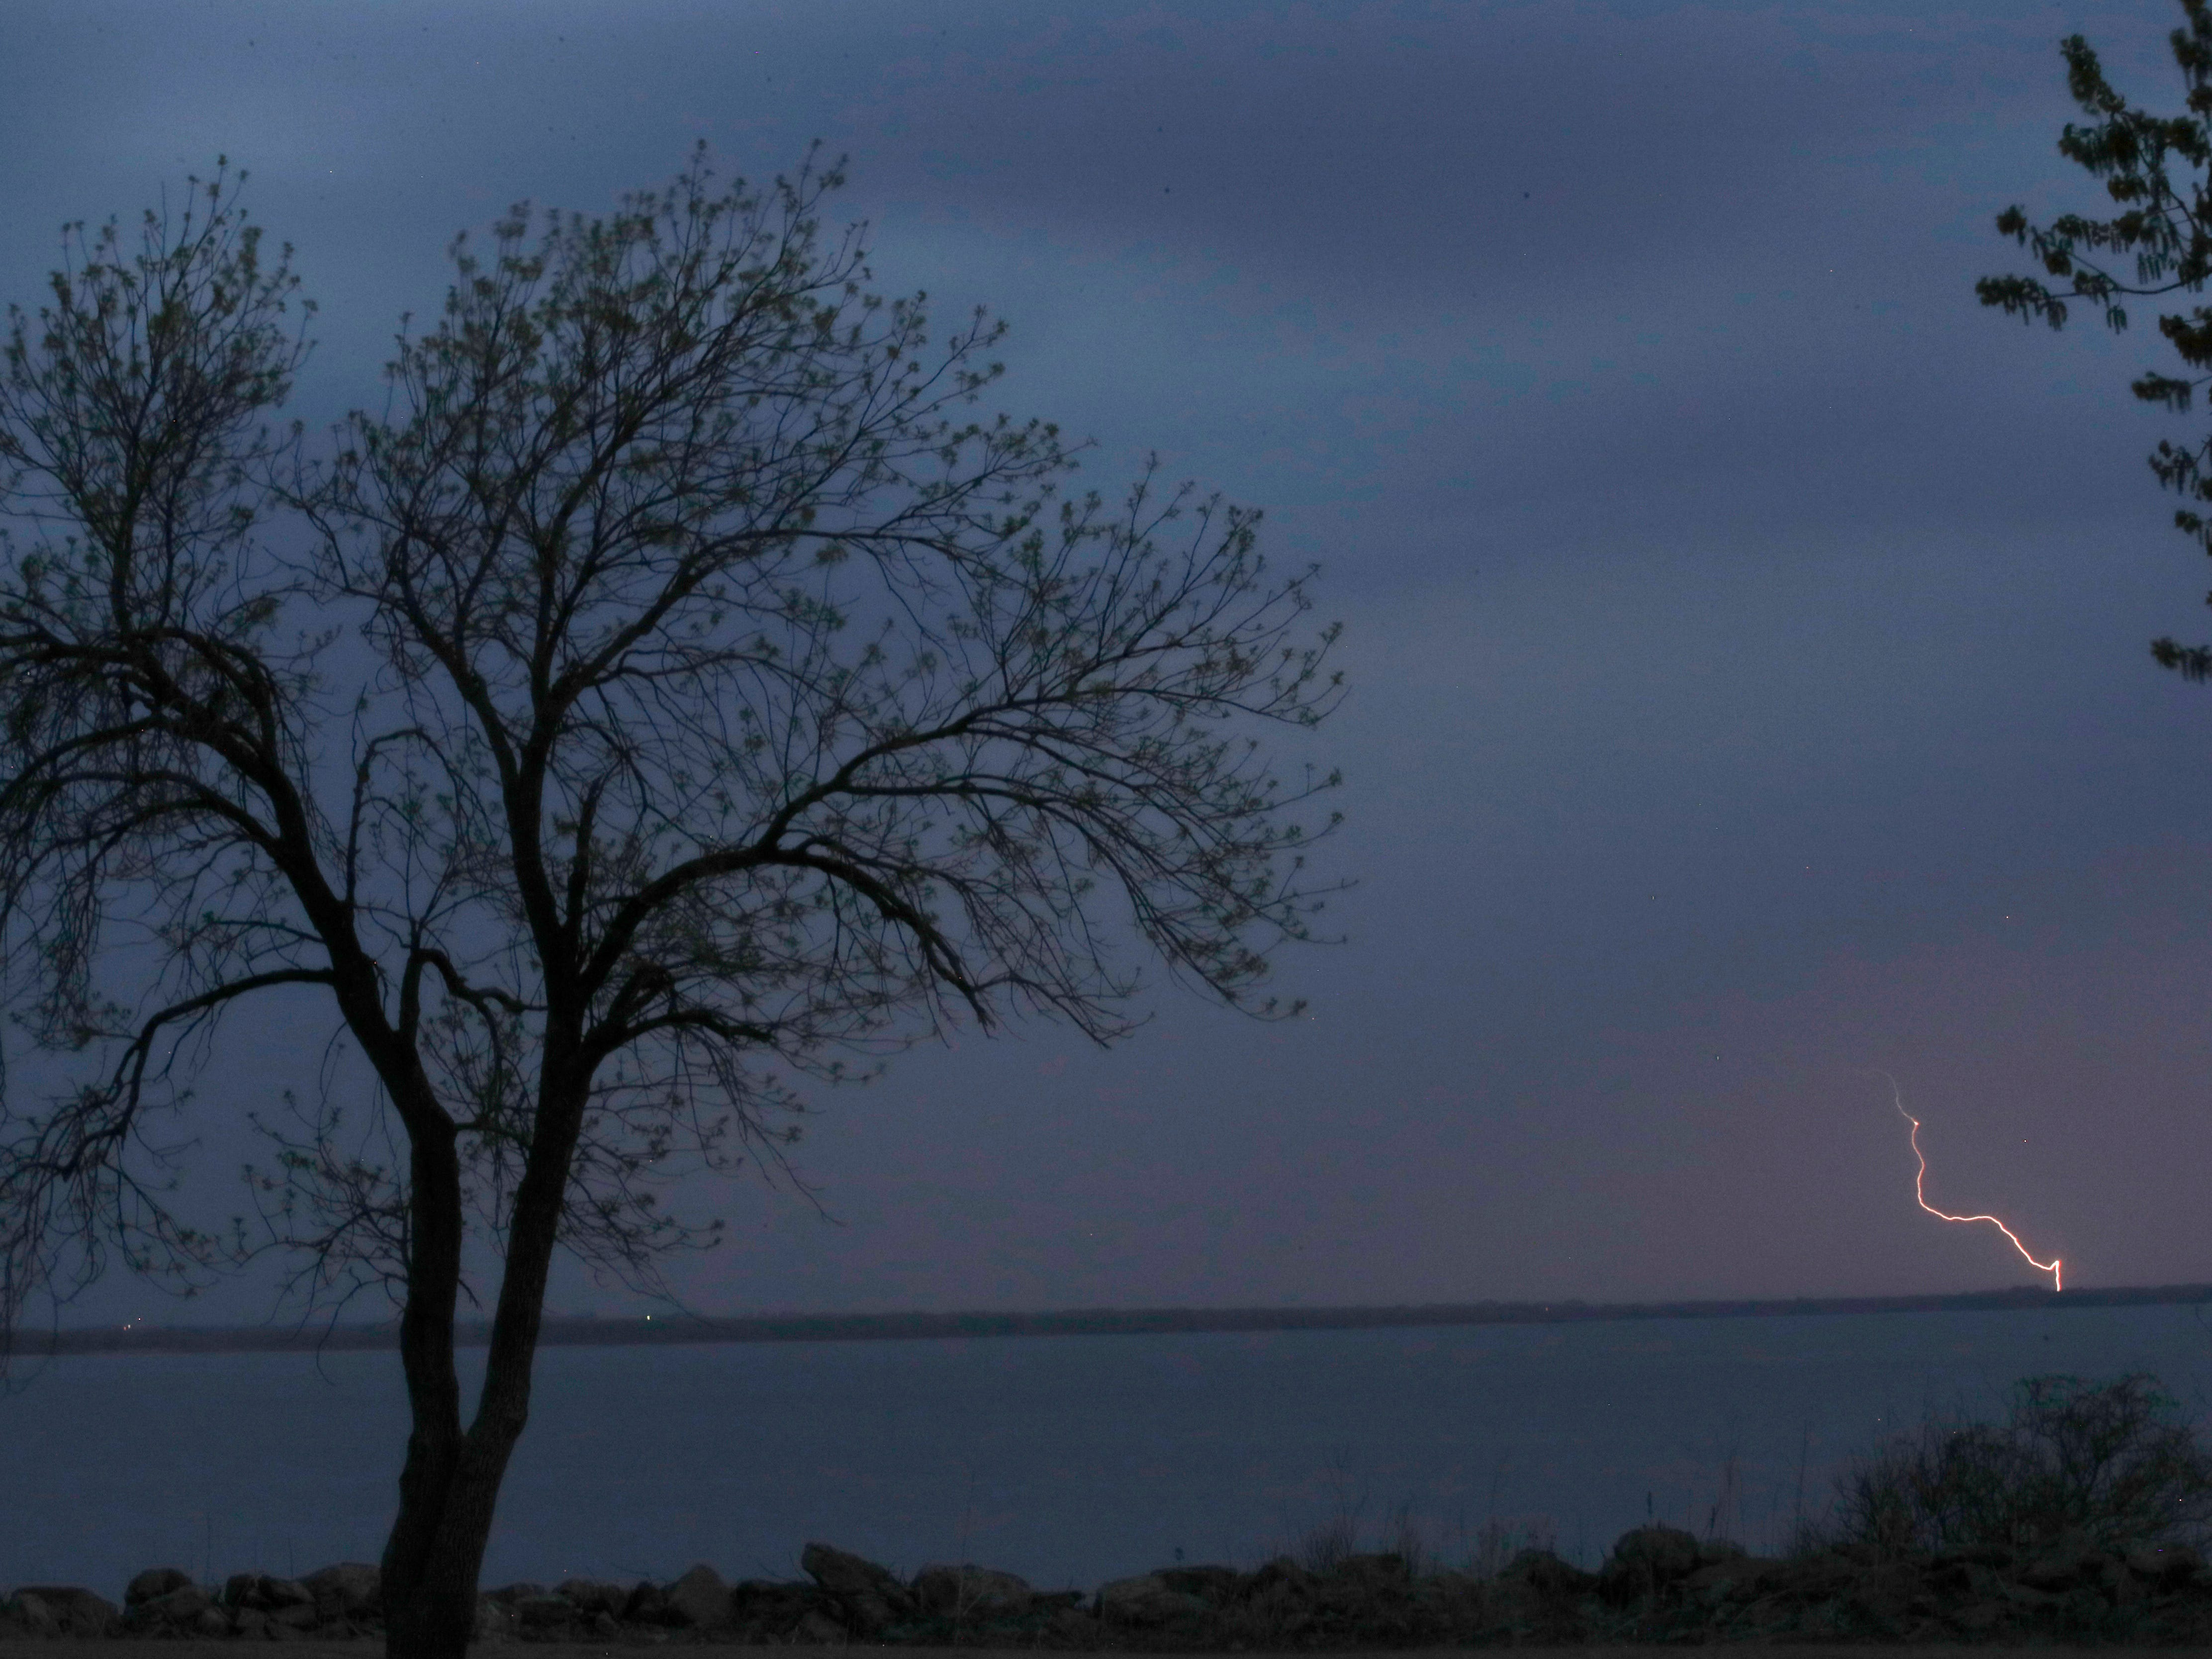 A thunderstorm moves across John Redmond Reservoir near Burlington, Kan., Wednesday, April 17, 2019. Several thunderstorms turned severe as they moved through the area.